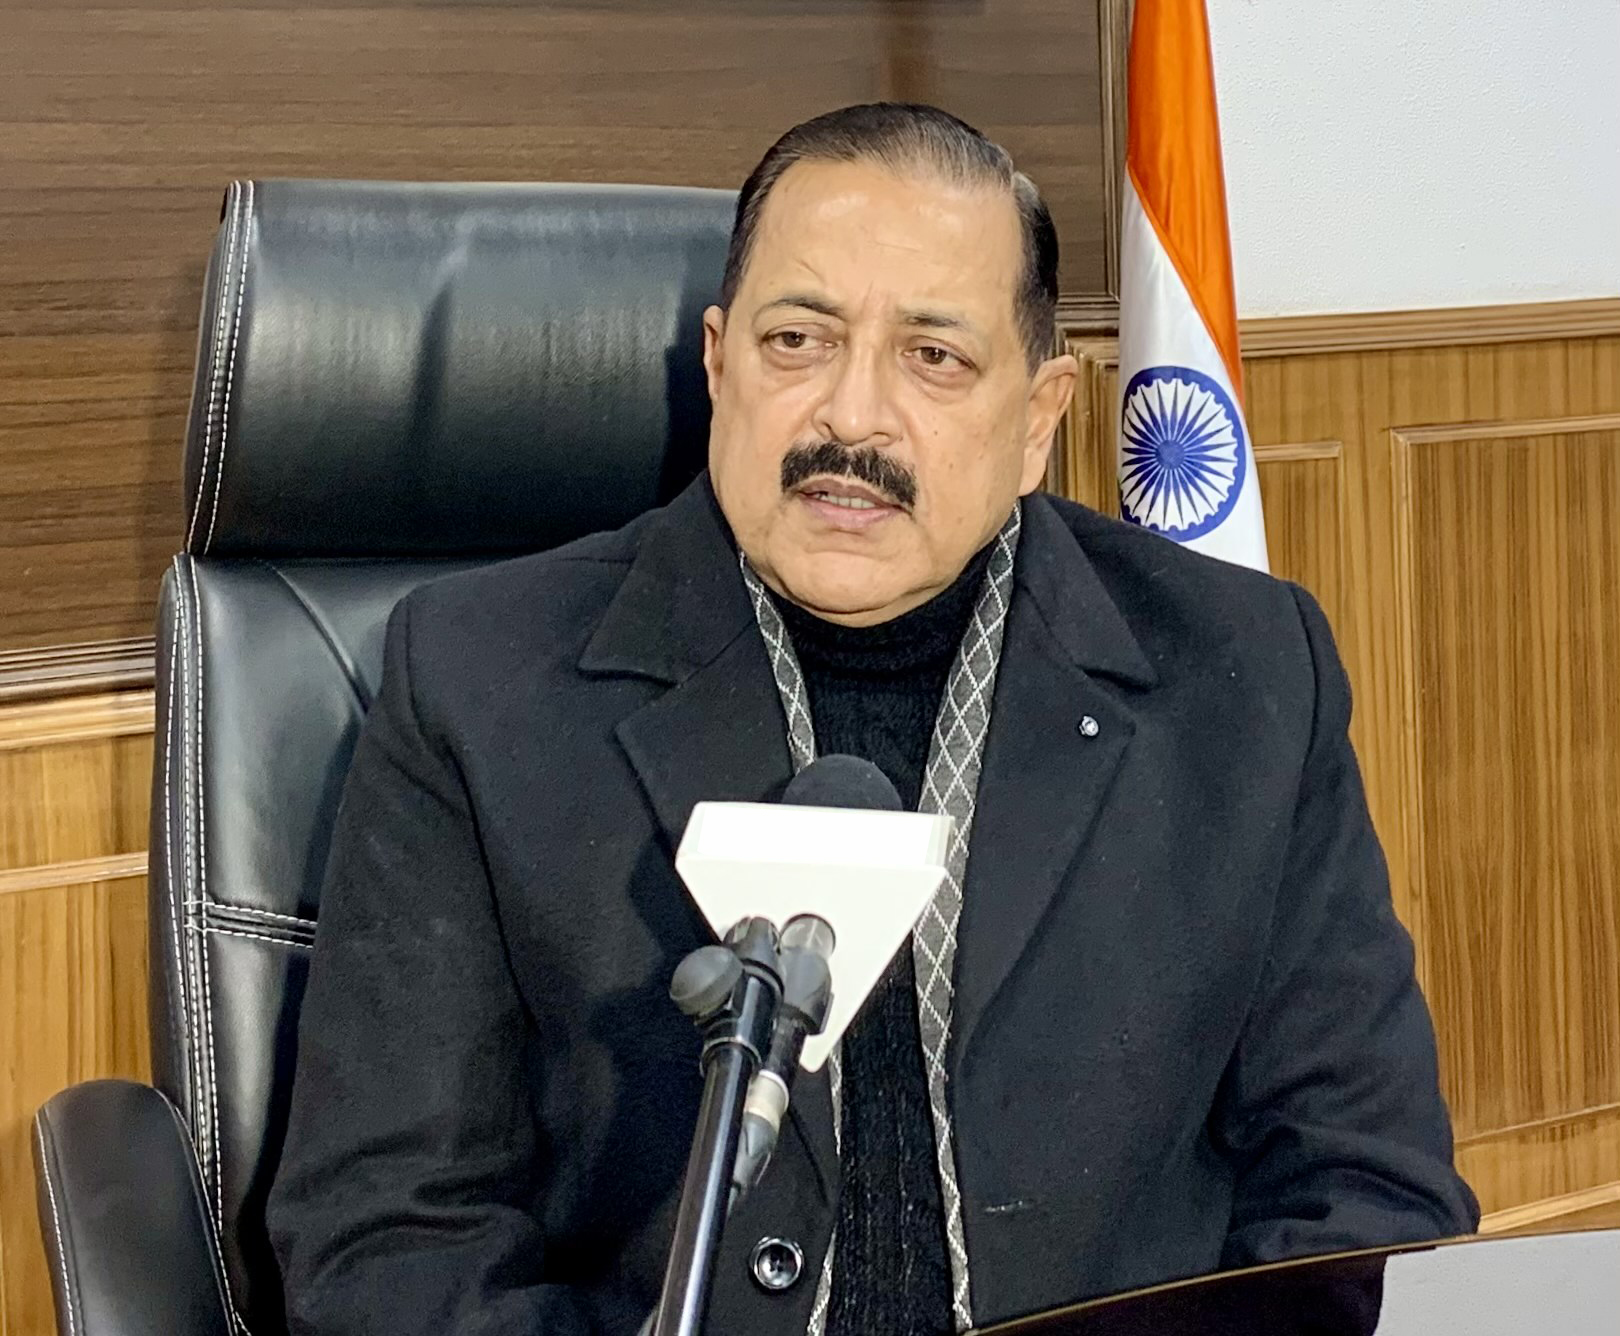 MoS PMO, Personnel, Public Grievances, Pensions, Atomic Energy and Space,